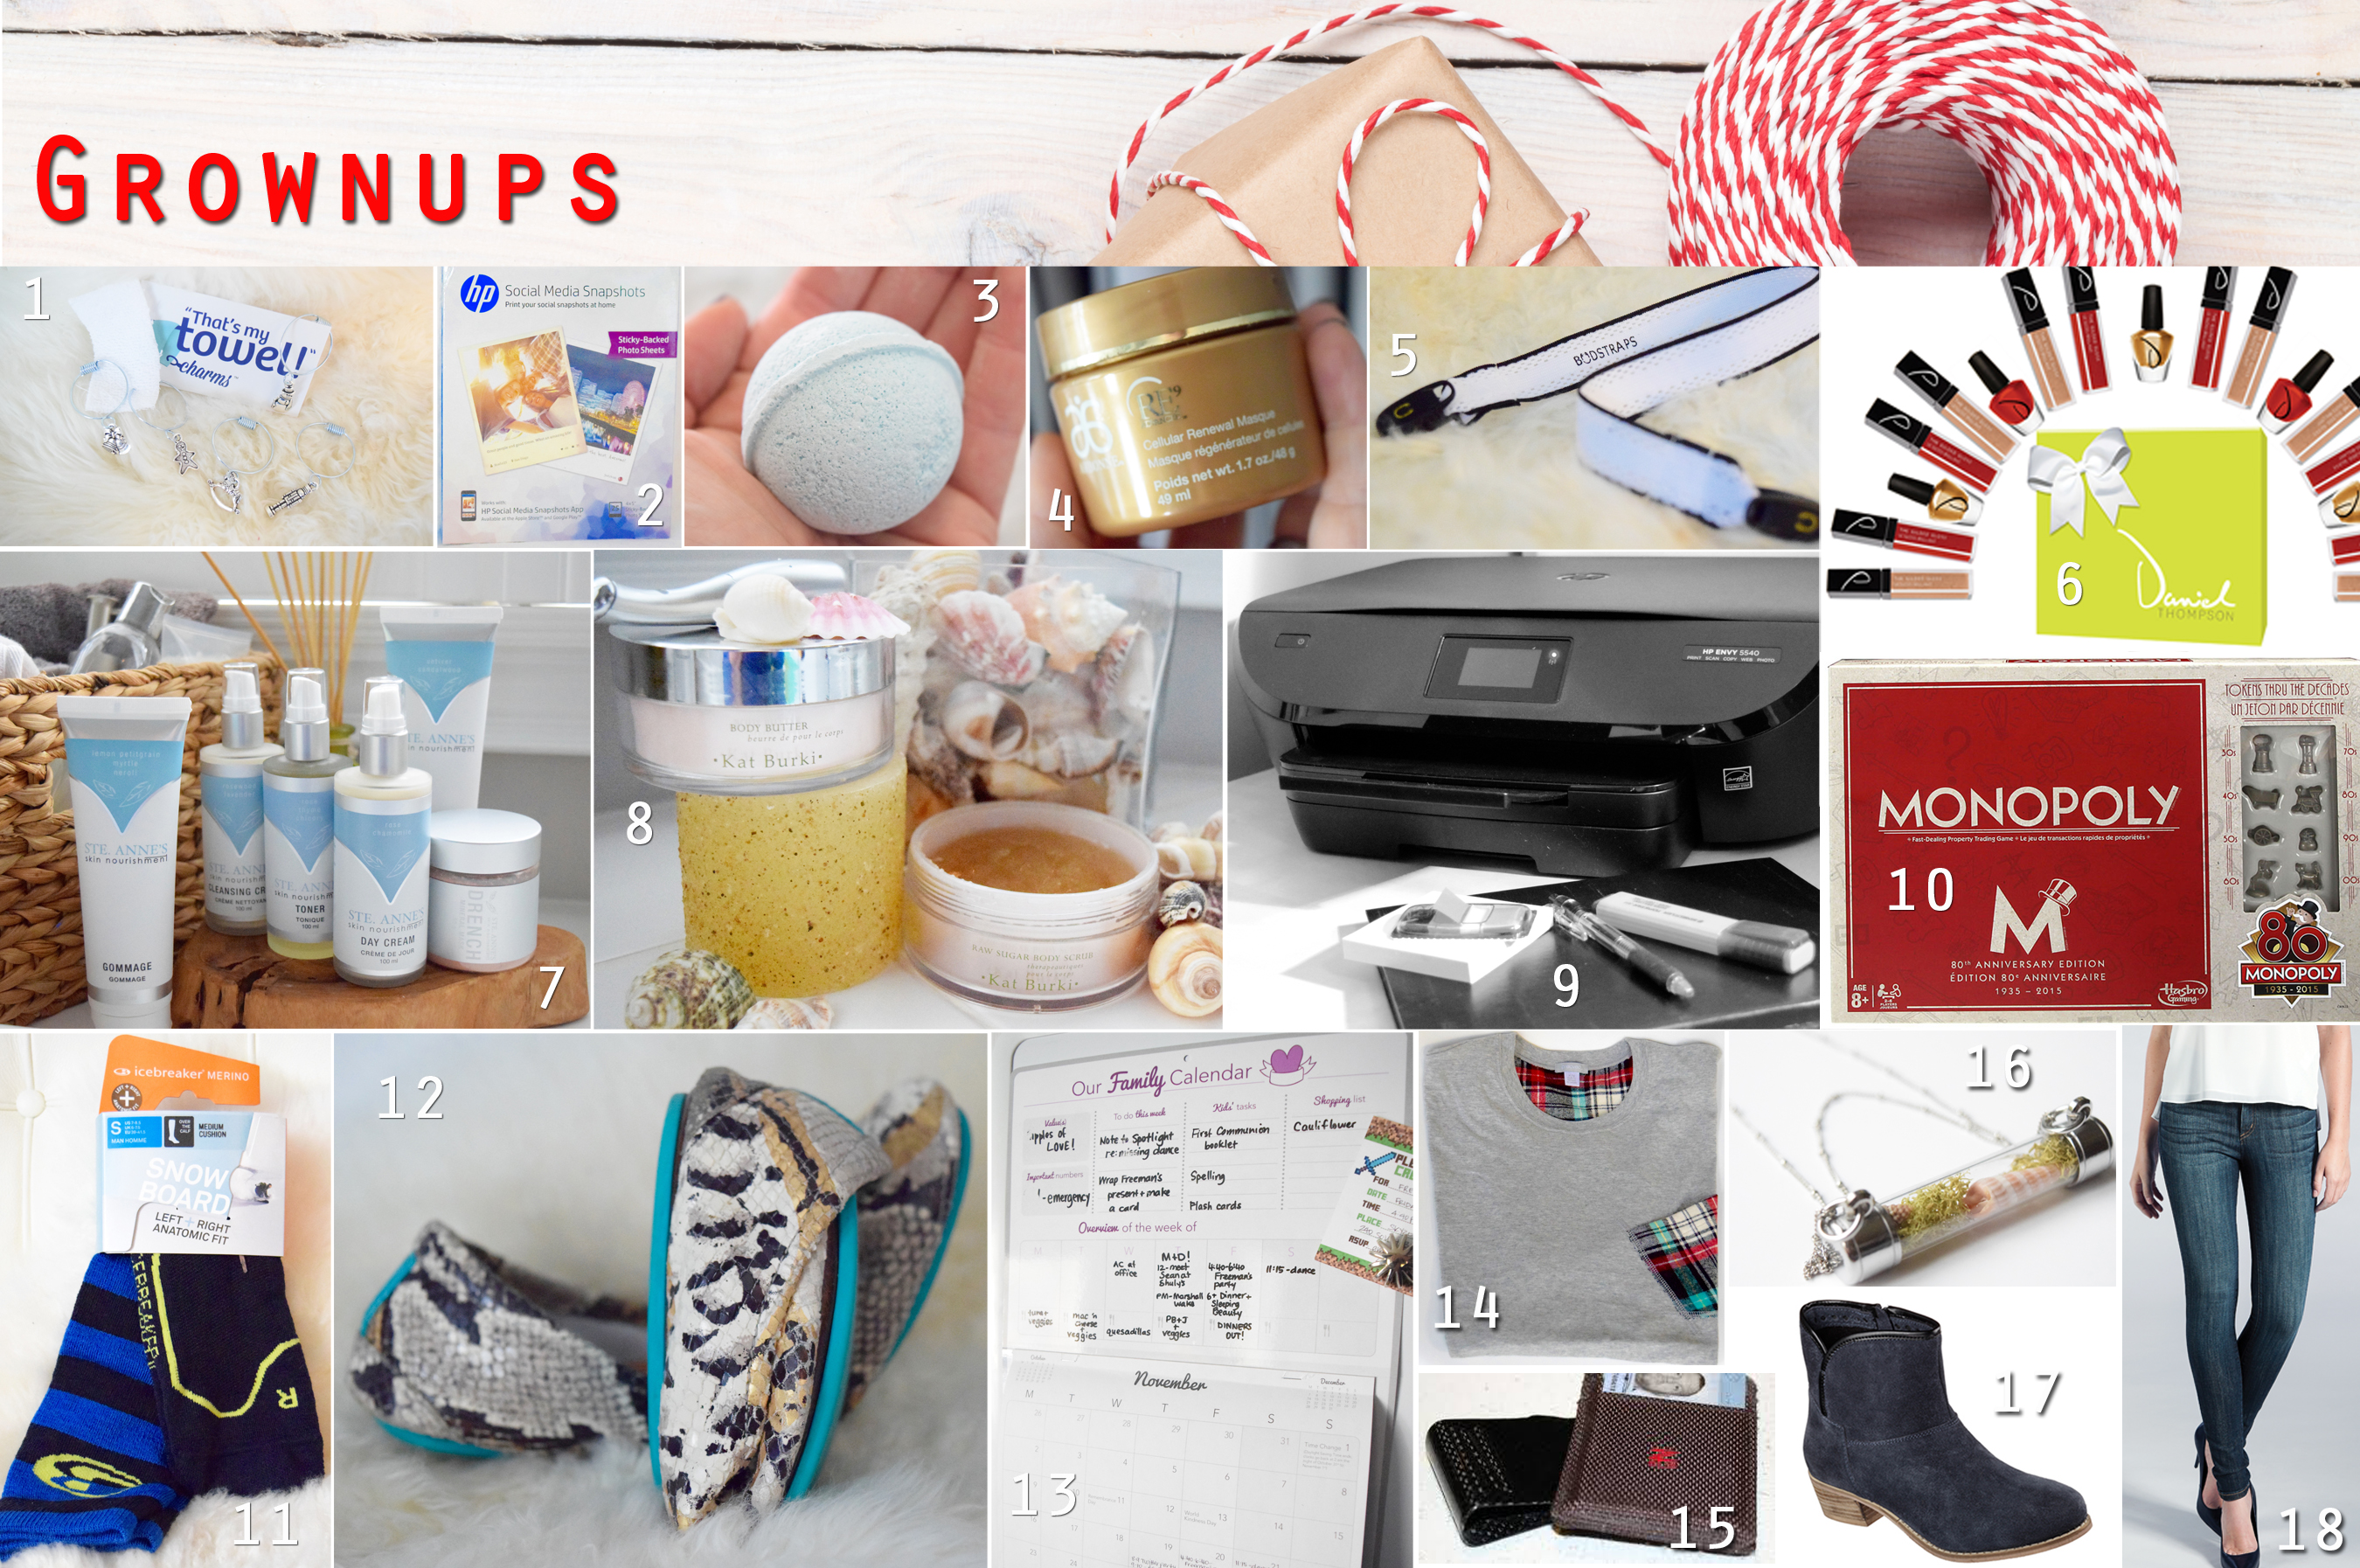 2015 holiday gift guide - grownup gifts collage